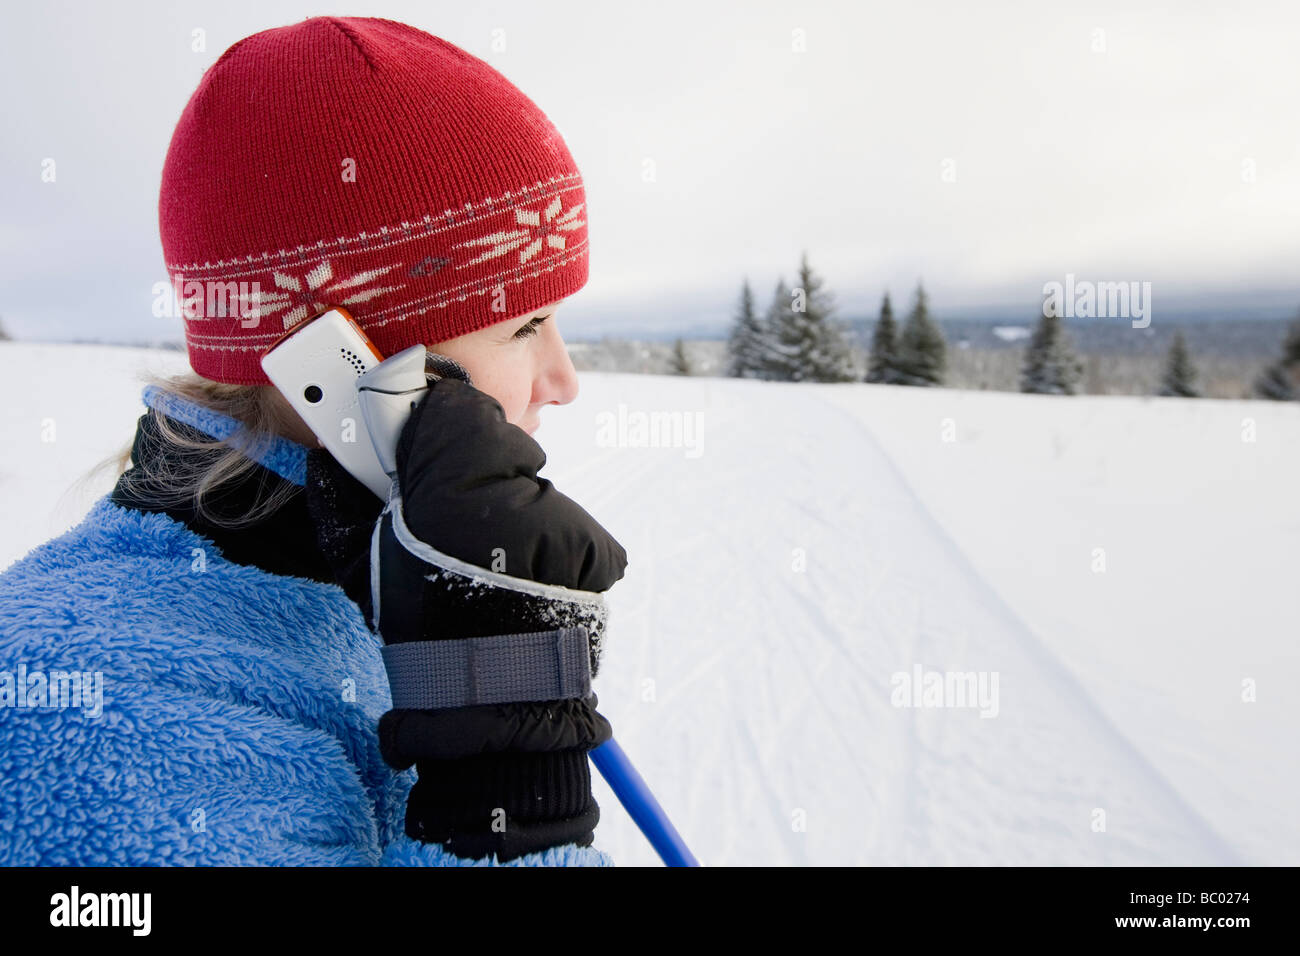 A young woman talking on a cell phone while cross-country skiing. - Stock Image